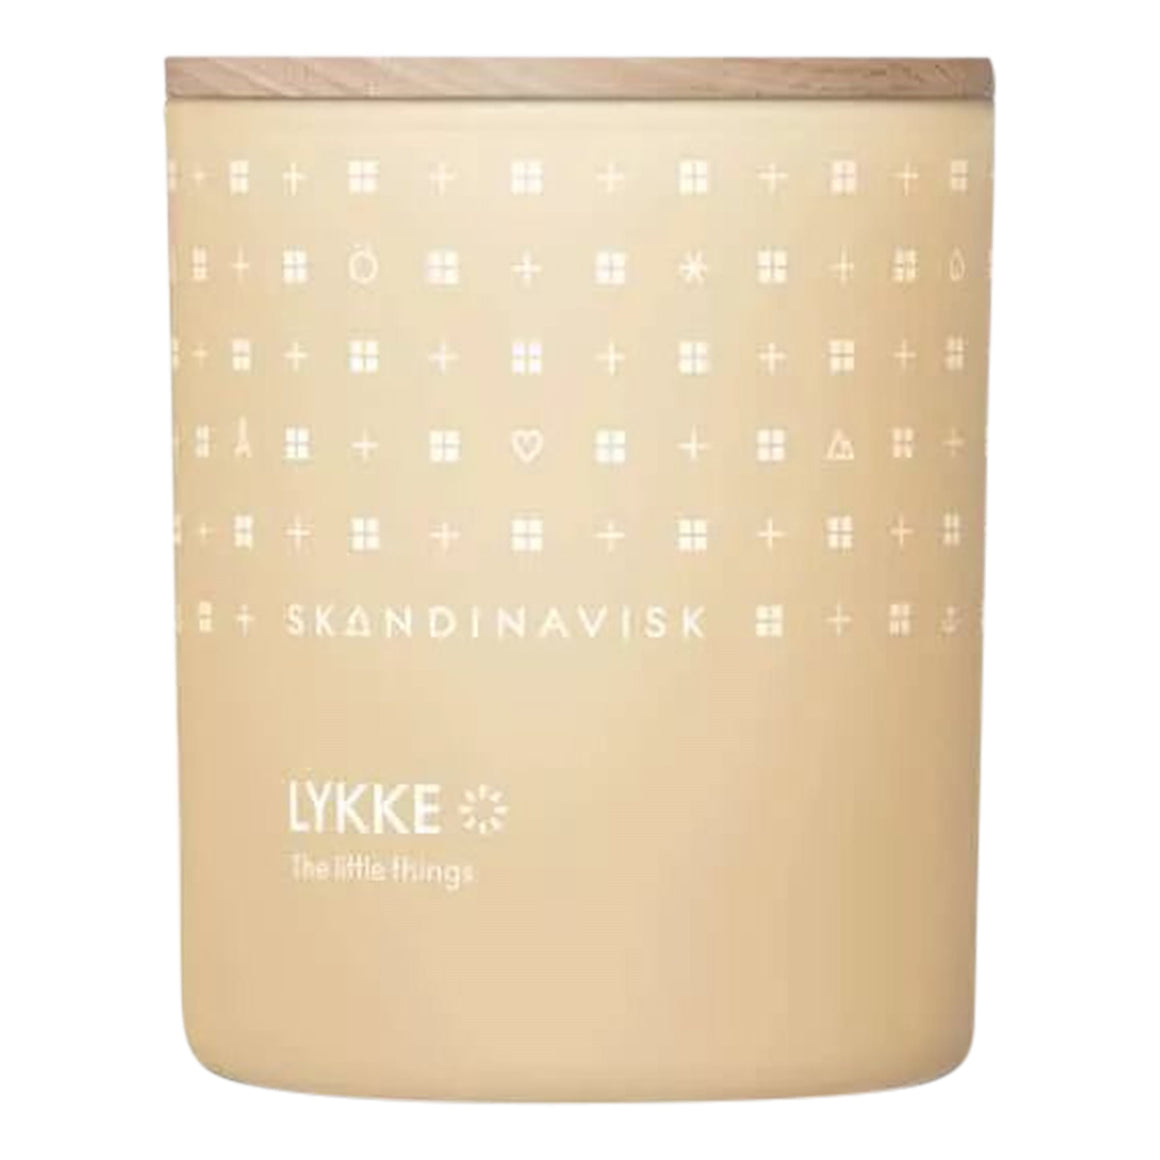 LYKKE 200g Scented Candle